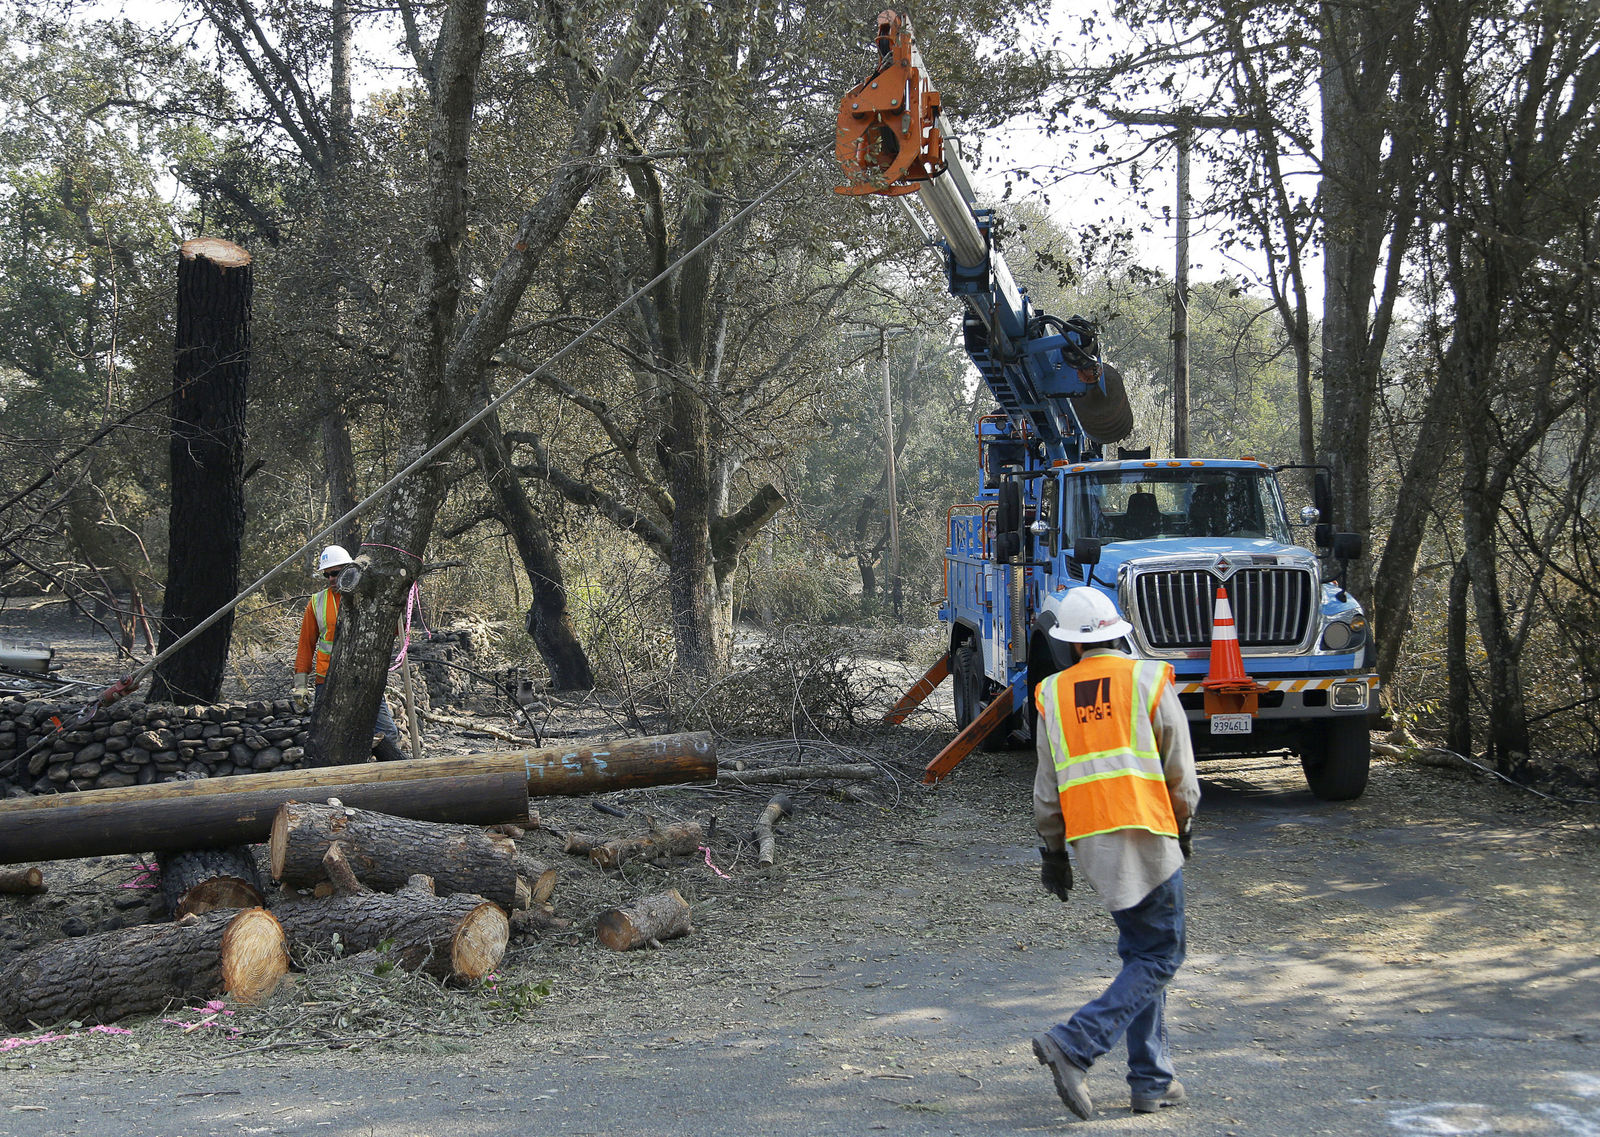 FILE - In this Oct. 18, 2017 file photo, a Pacific Gas & Electric crew works on replacing poles destroyed by wildfires in Glen Ellen, Calif. A U.S. judge in San Francisco overseeing a criminal case against Pacific Gas & Electric Co. is scaling back his proposals to prevent the utility's equipment from causing more wildfires. Judge William Alsup said in an order late Tuesday, March 5, 2019, that he's now considering making PG&E comply with targets in a wildfire mitigation plan that the company submitted to California regulators. (AP Photo/Ben Margot, File)